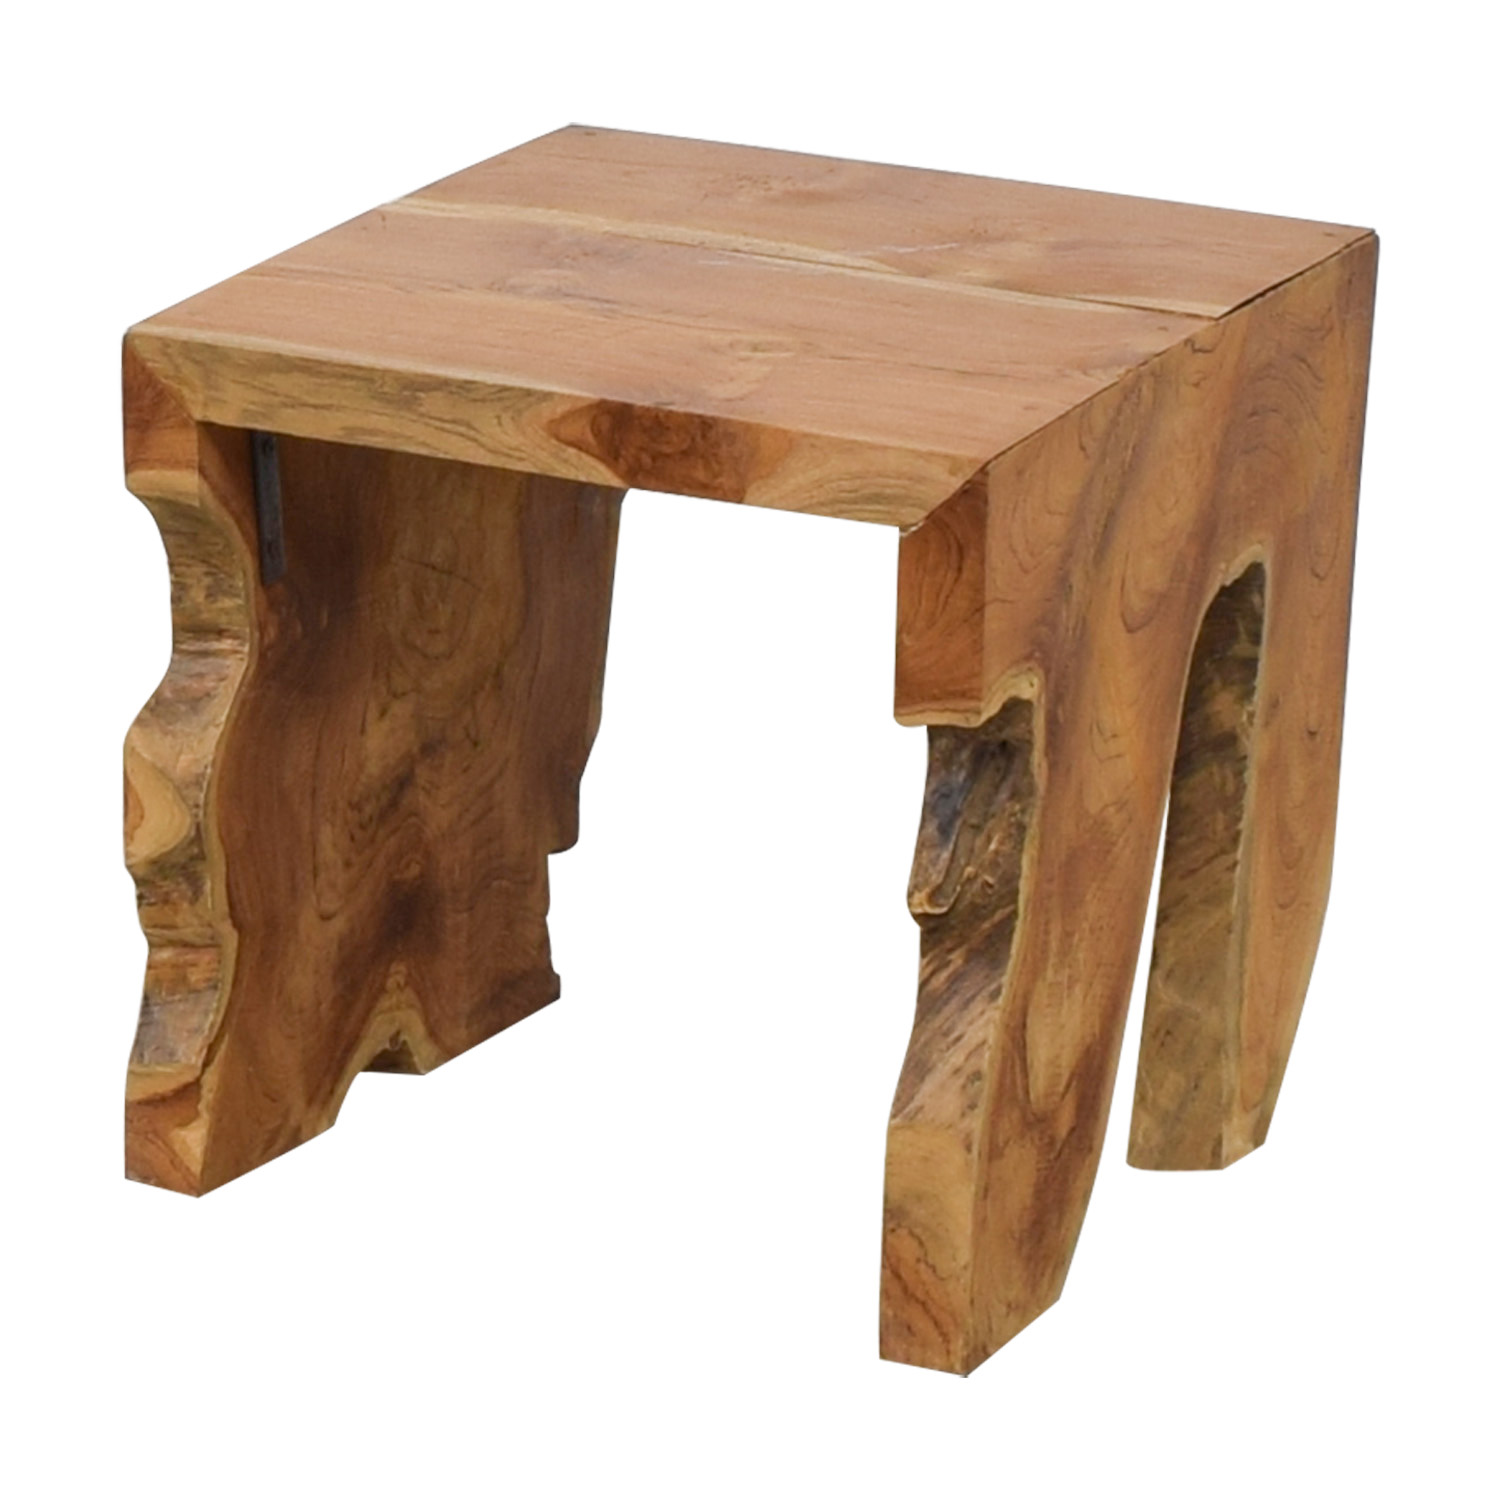 buy  Teak Wood Side Table online